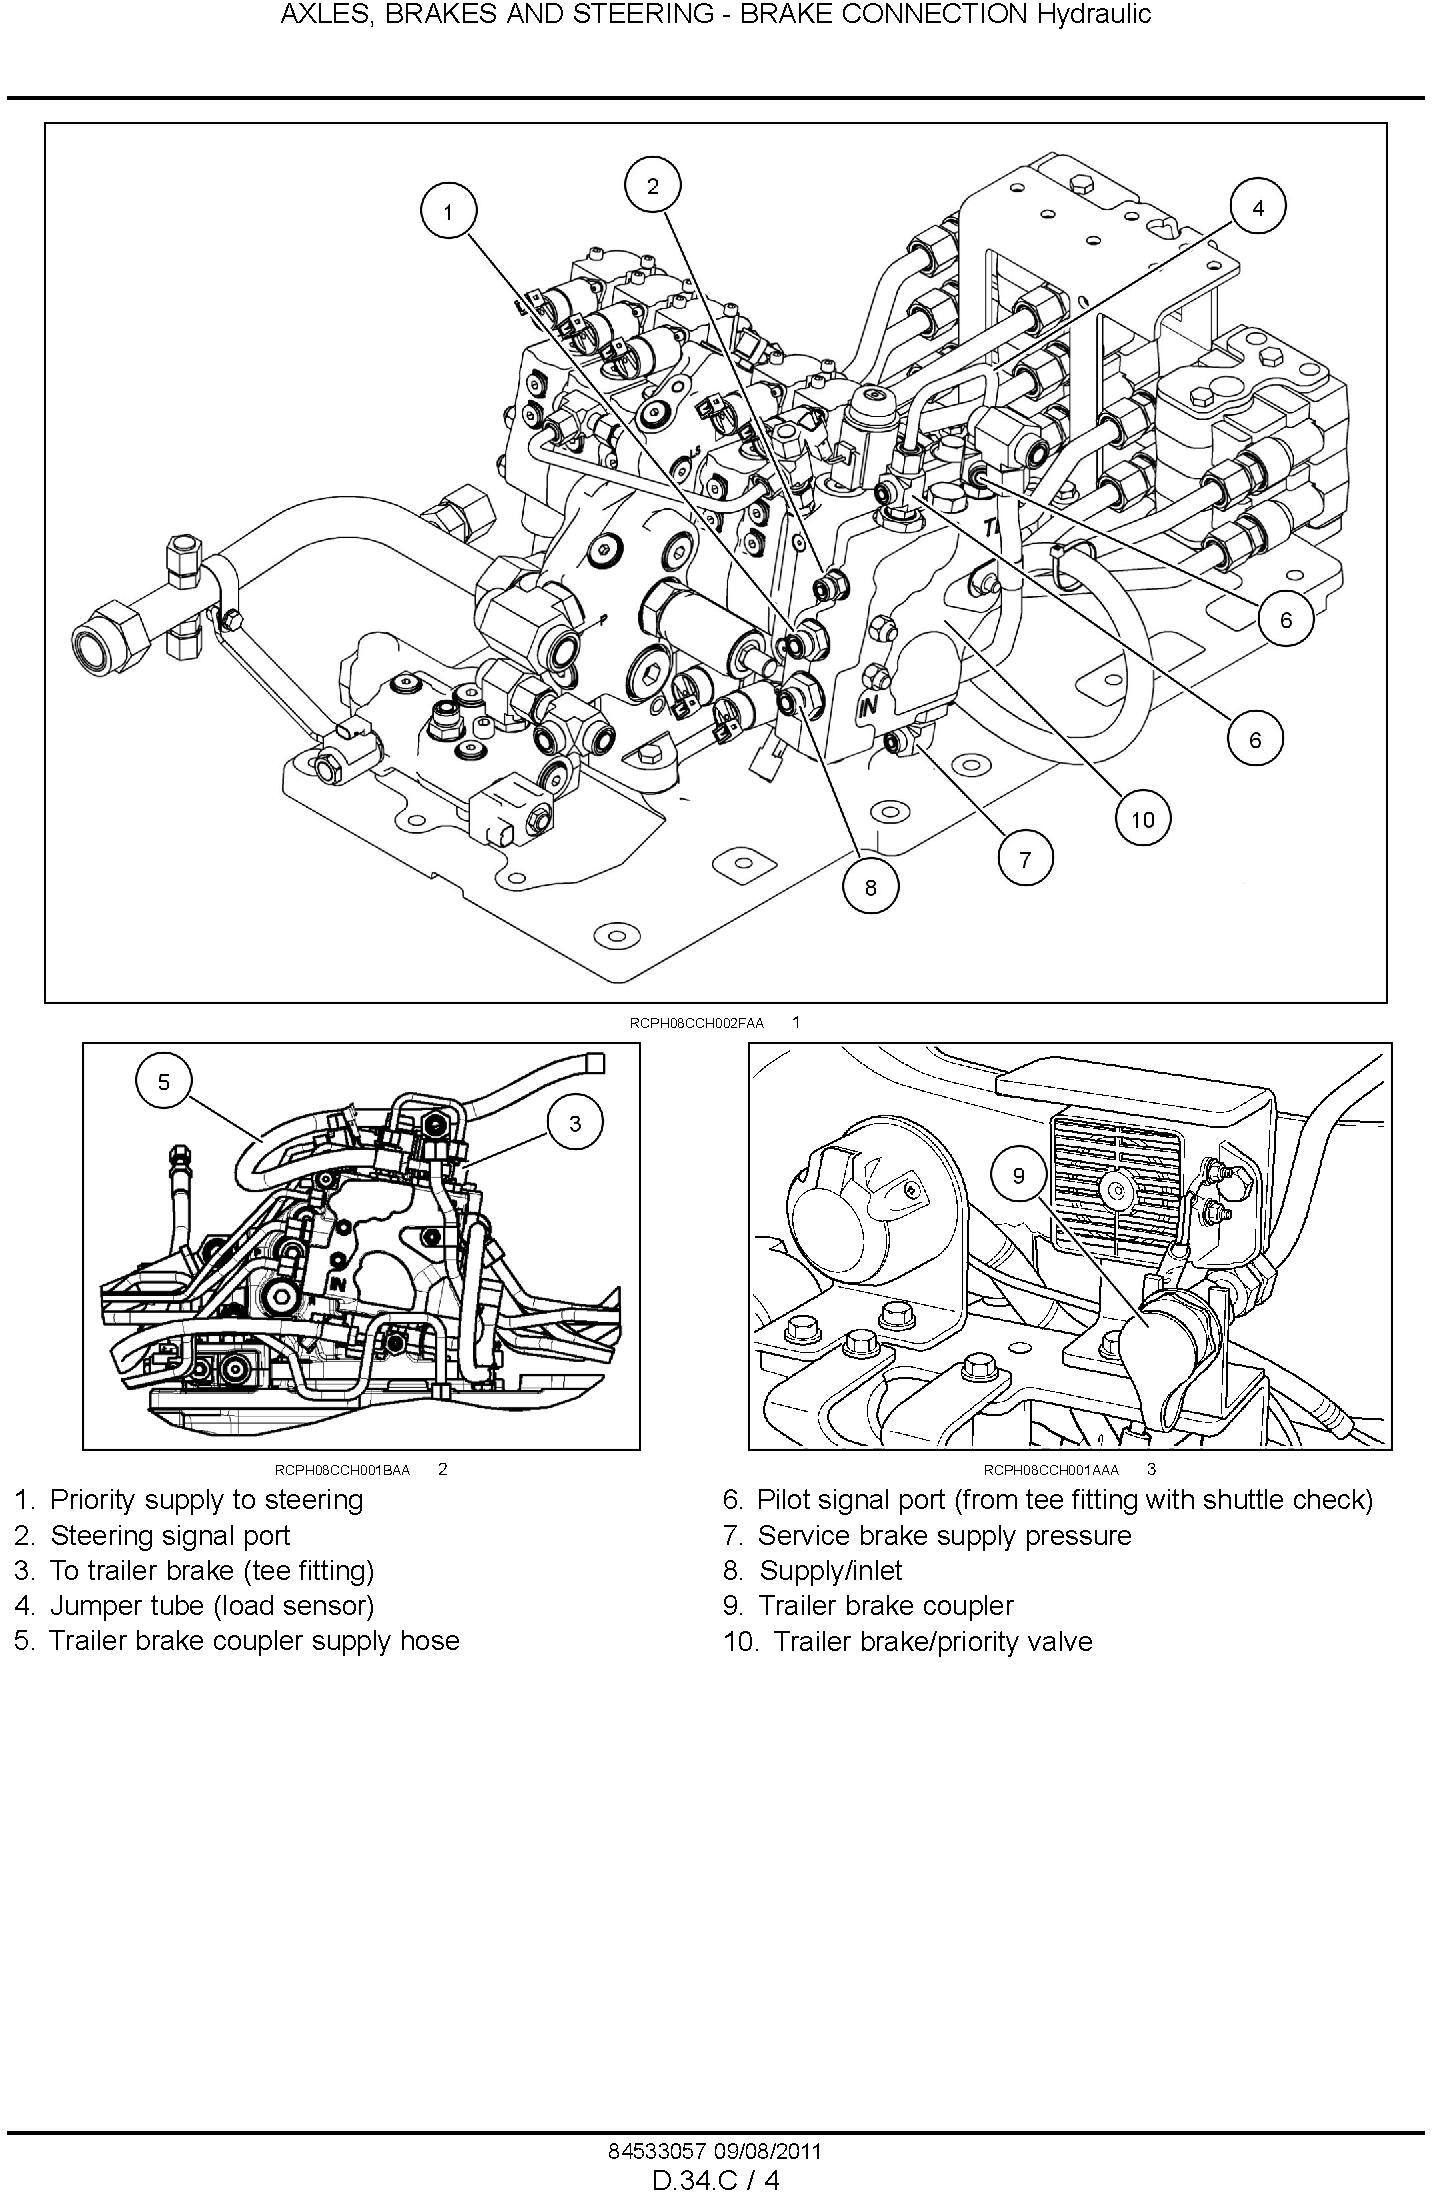 New Holland T8.275, T8.300, T8.330, T8.360, T8.390 Agricultural Tractor Service Manual (08/2011) - 3